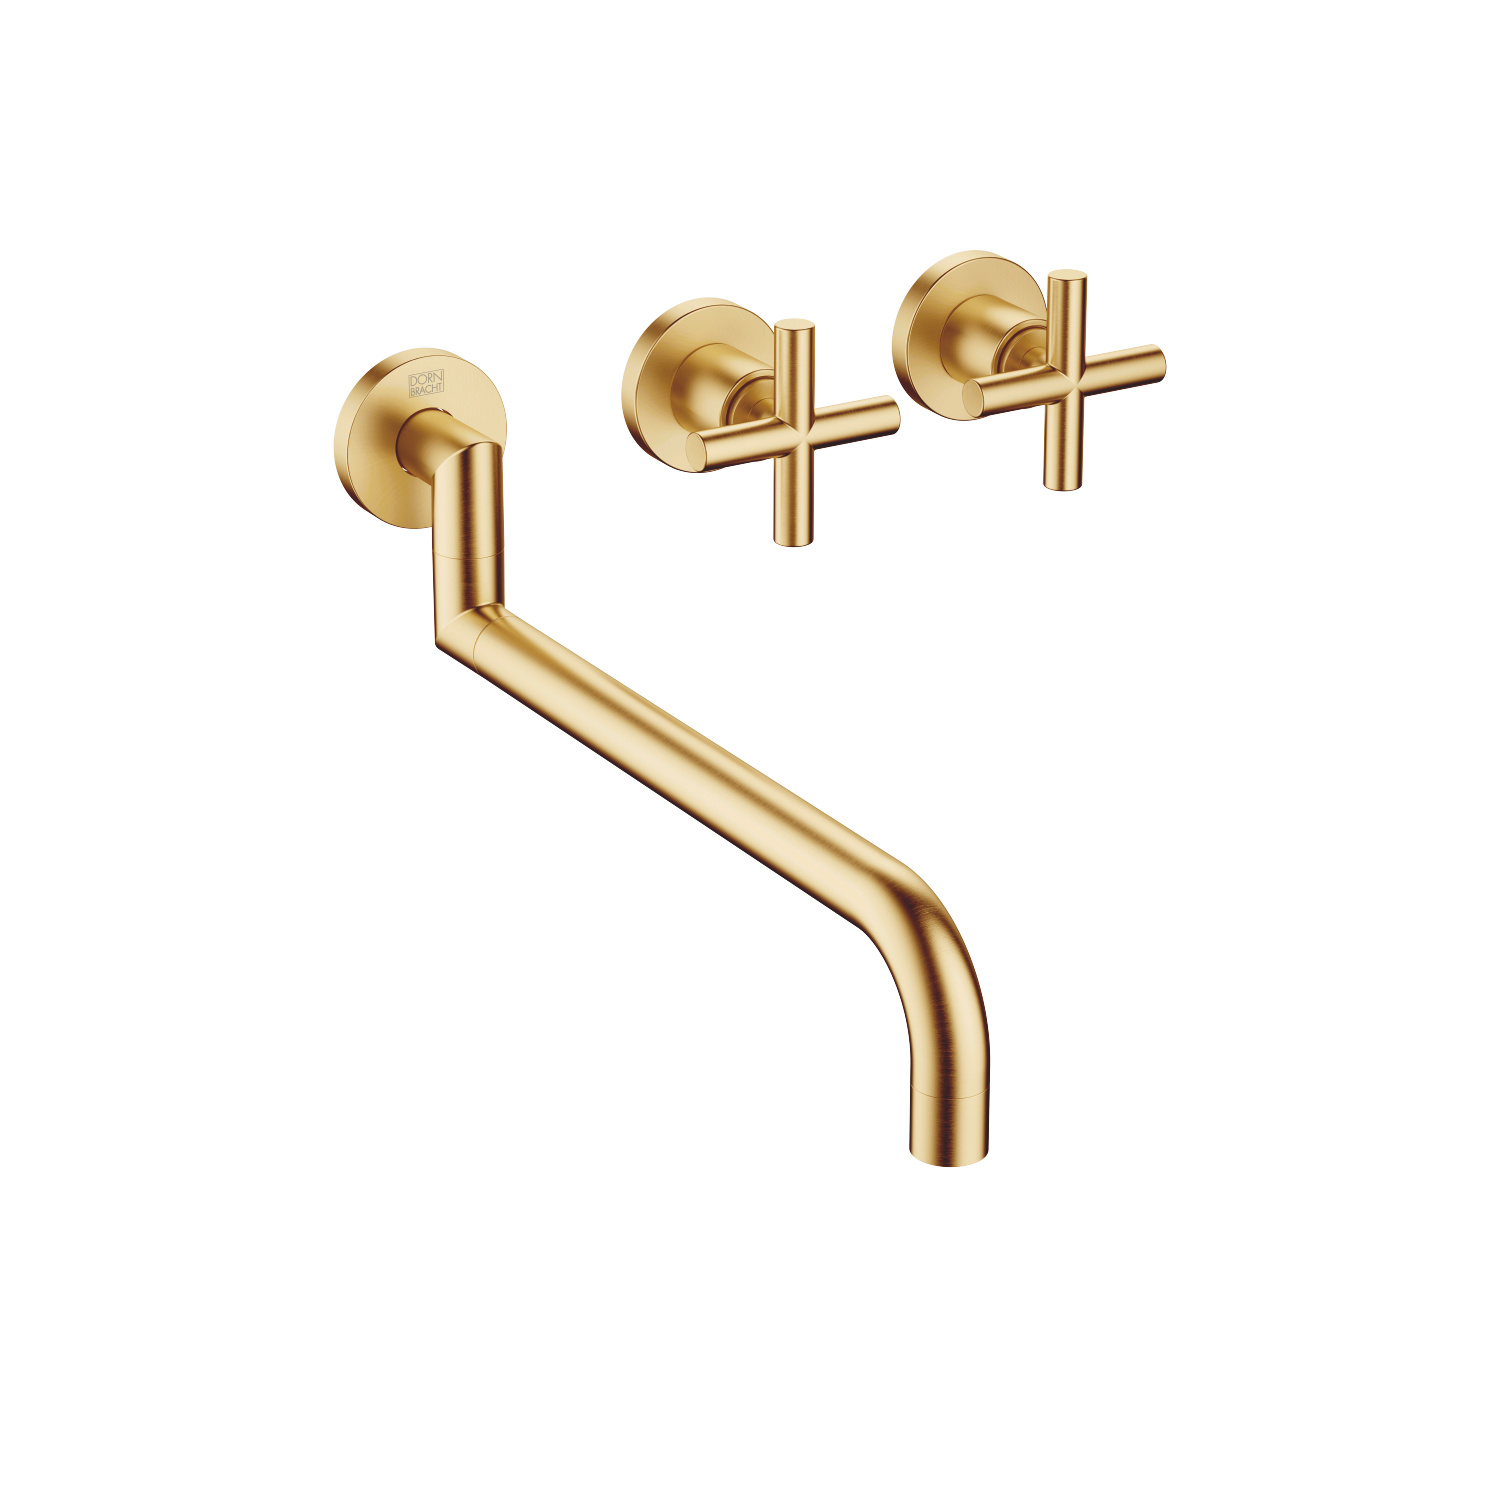 Wall-mounted sink mixer - brushed Durabrass